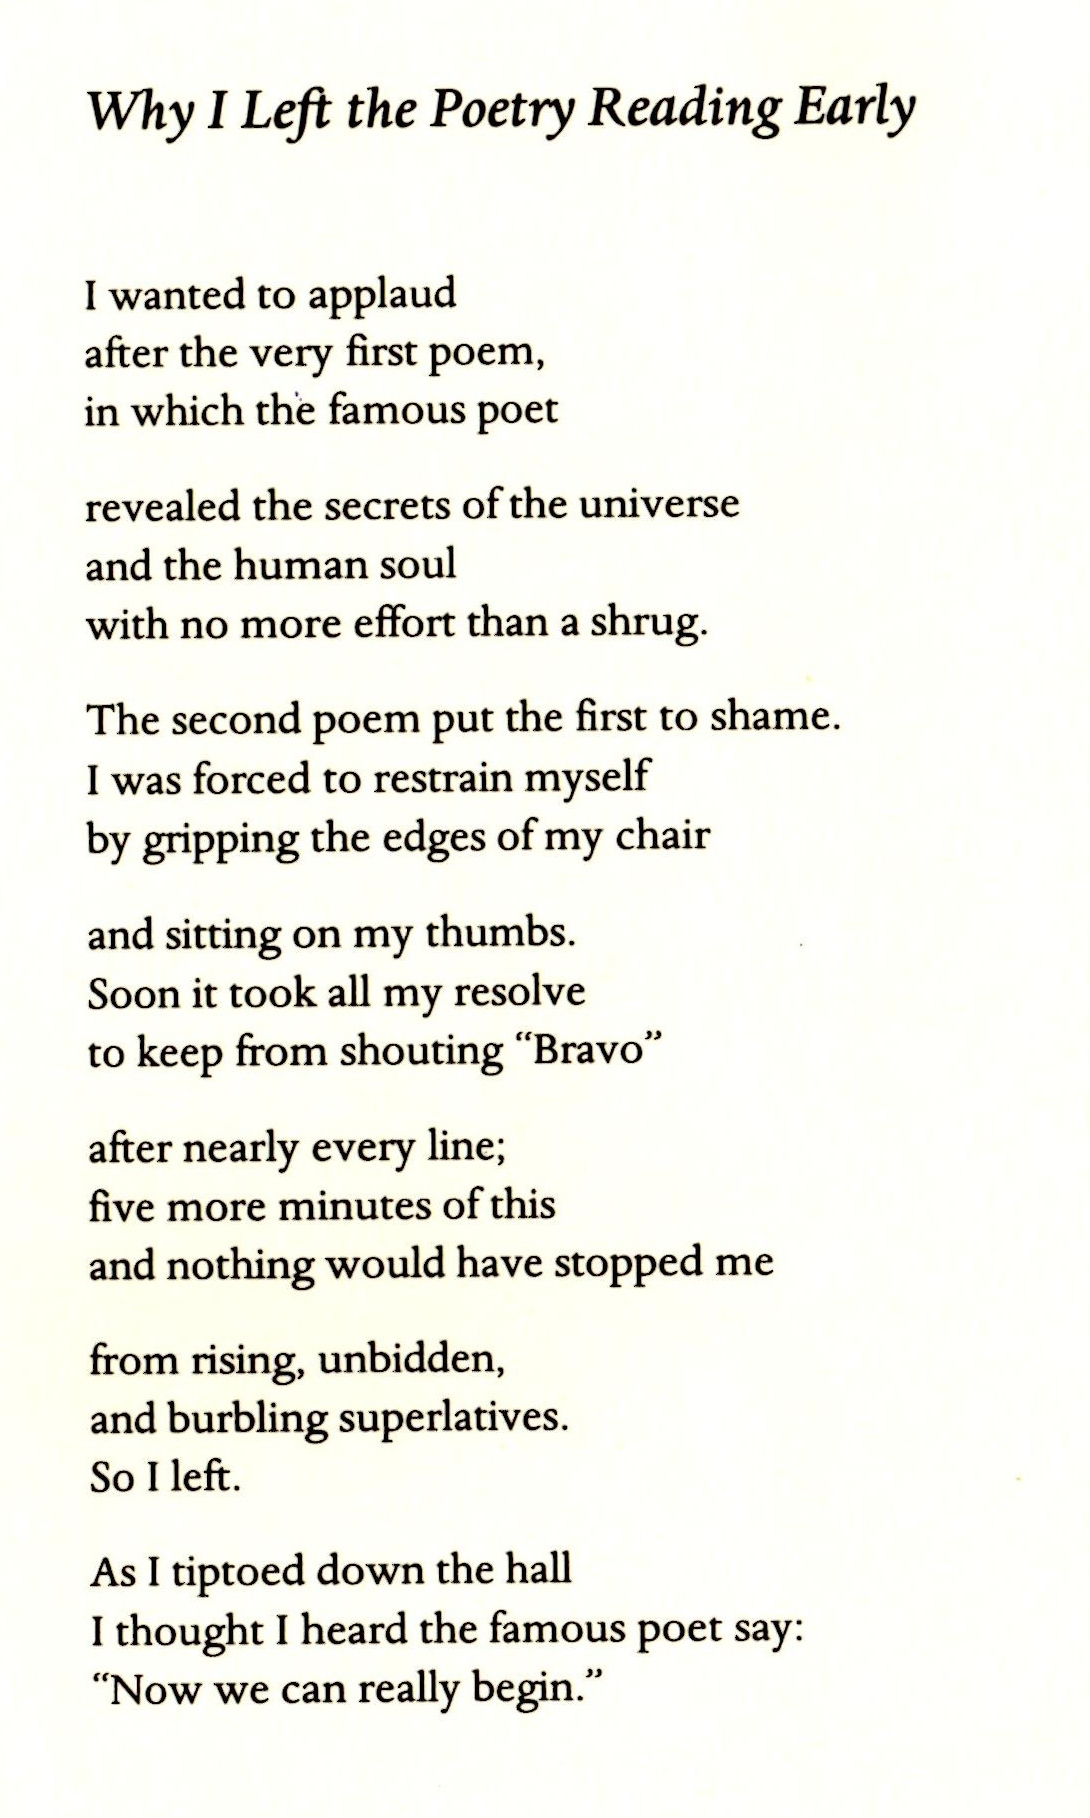 Have a Chair: Poems